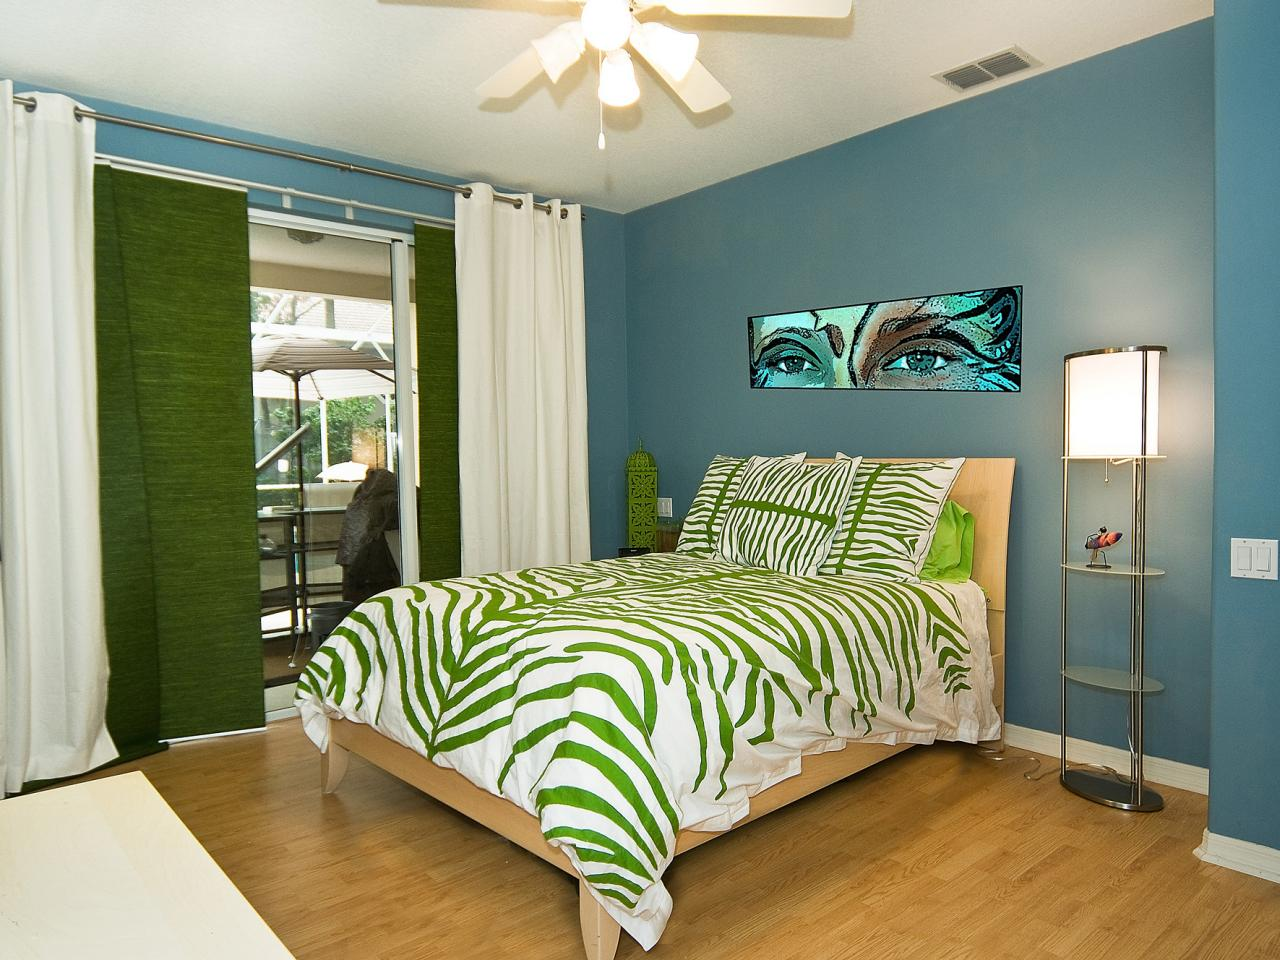 Sassy and sophisticated teen and tween bedroom ideas for Bedroom ideas for teen girl